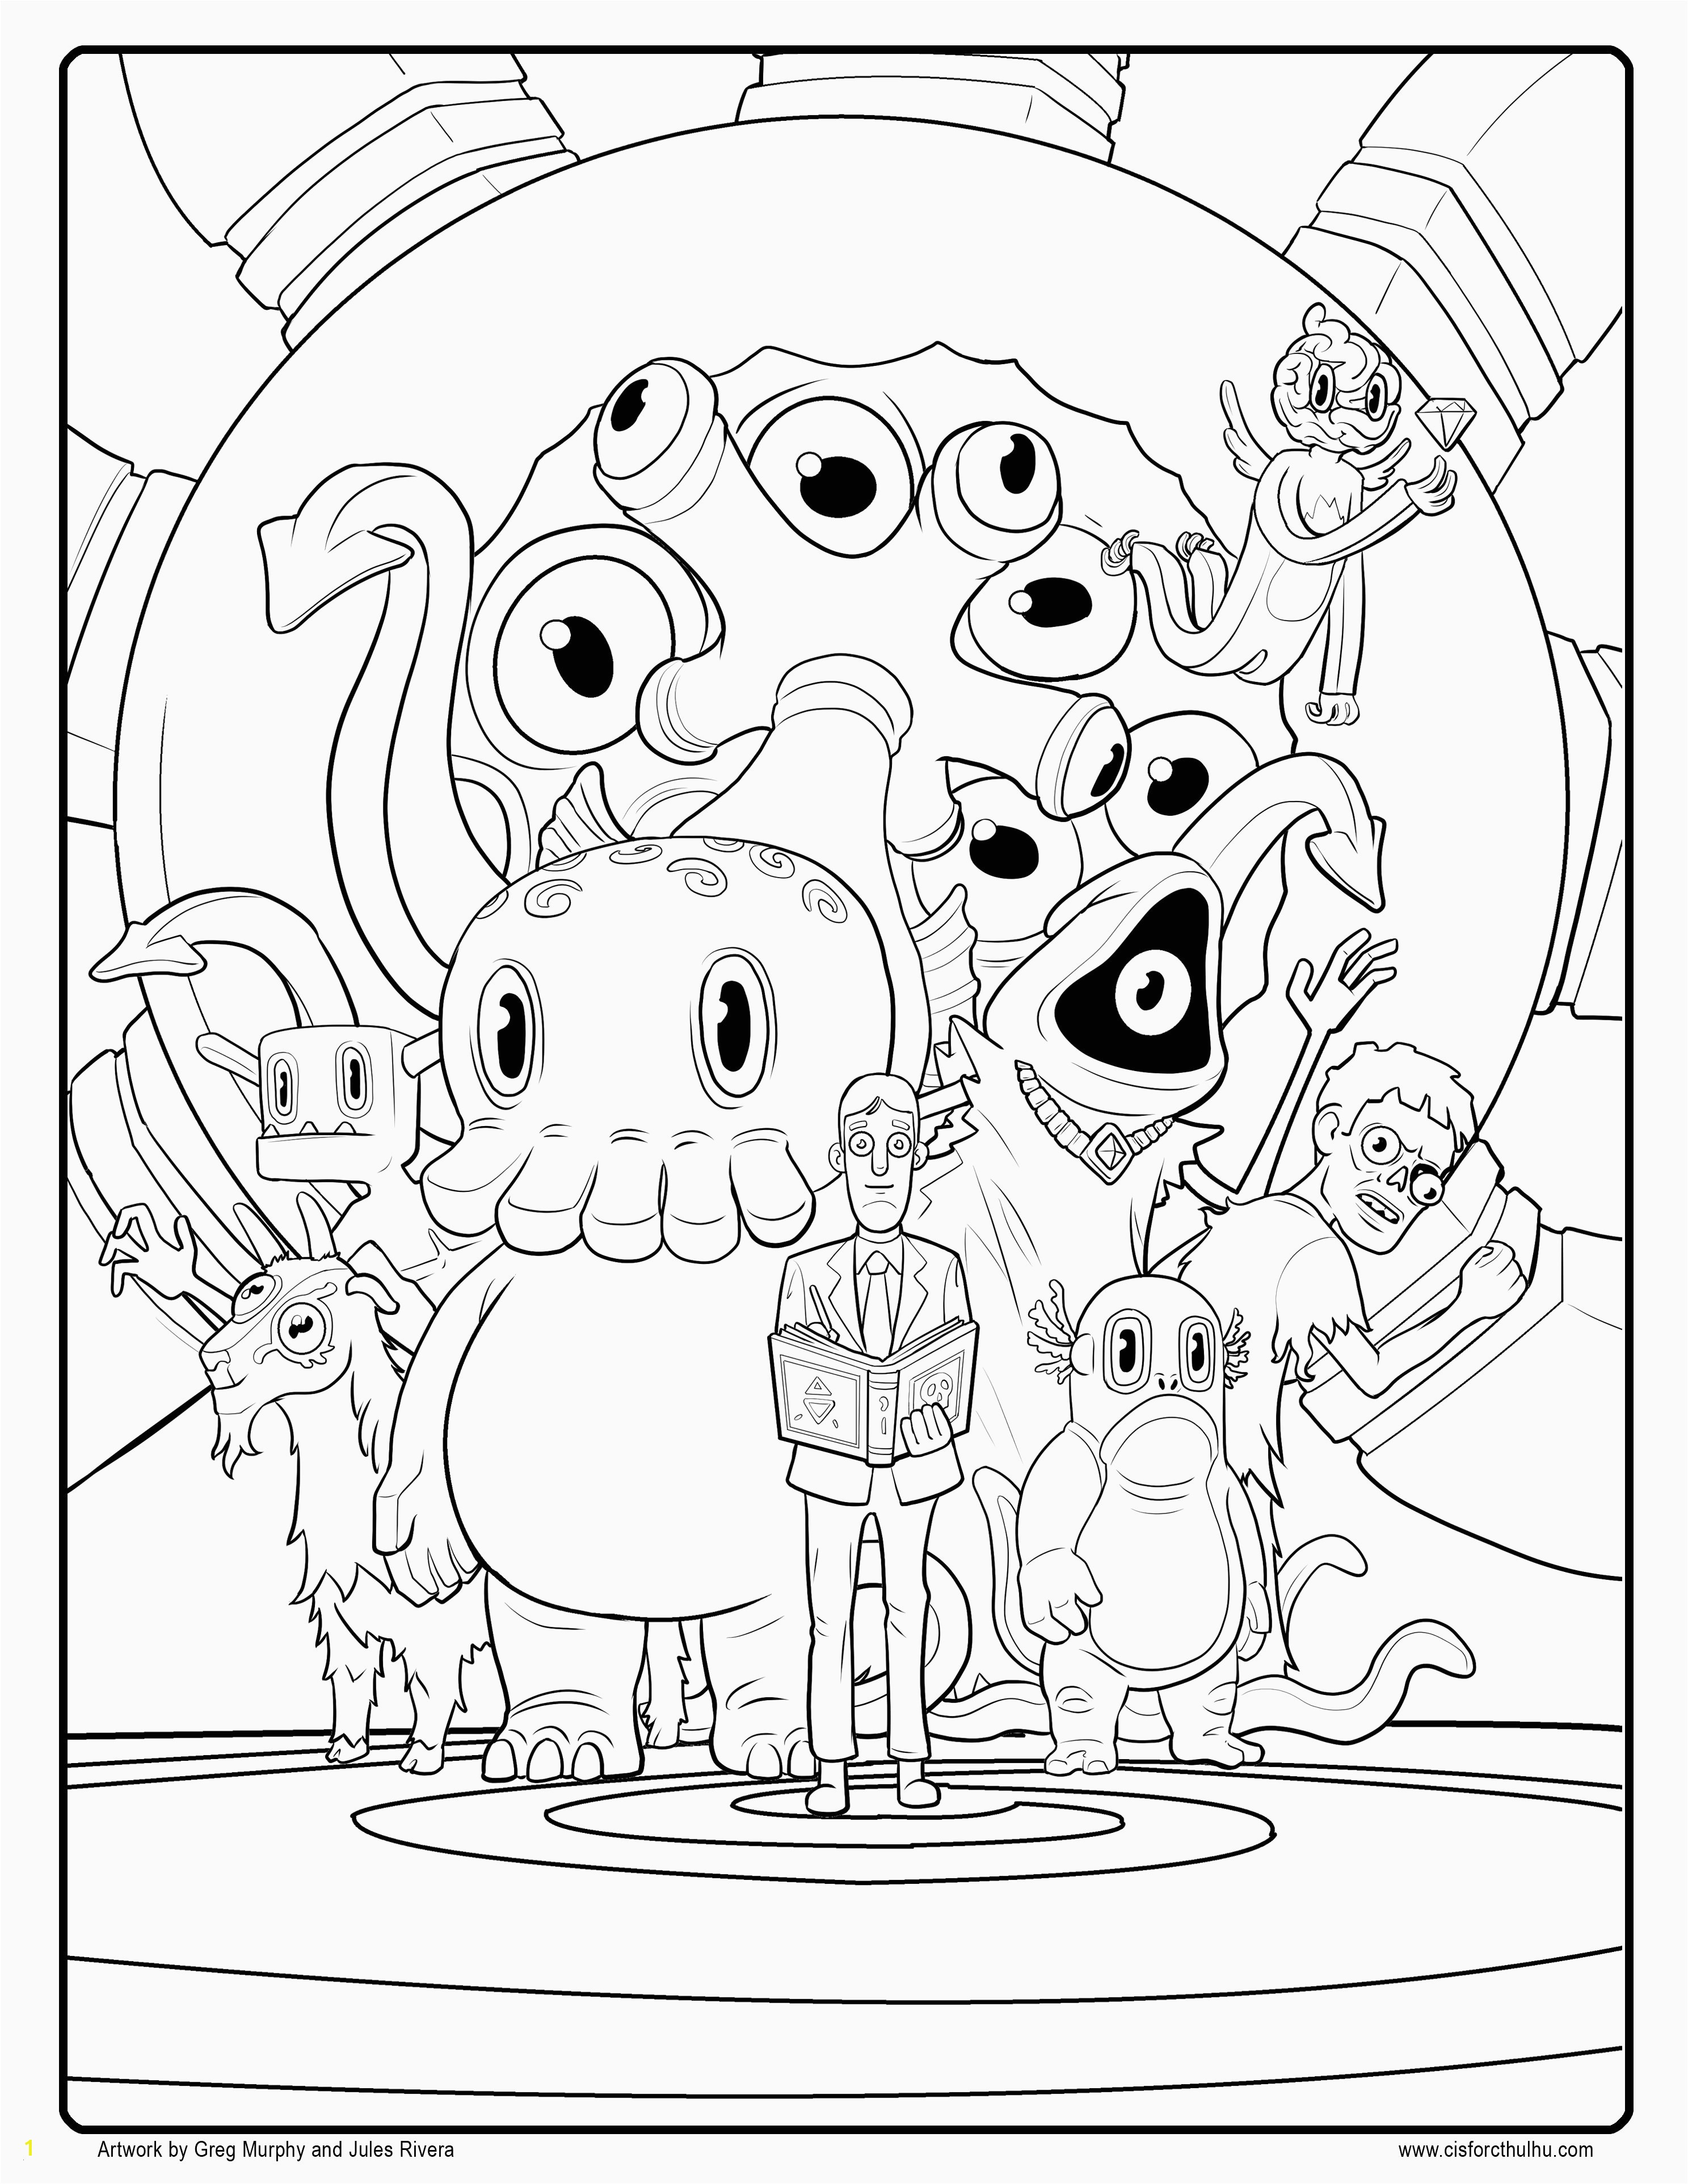 Rocketship Coloring Page Coloring Jobs Brilliant Coloring Pages Fresh Printable Cds 0d